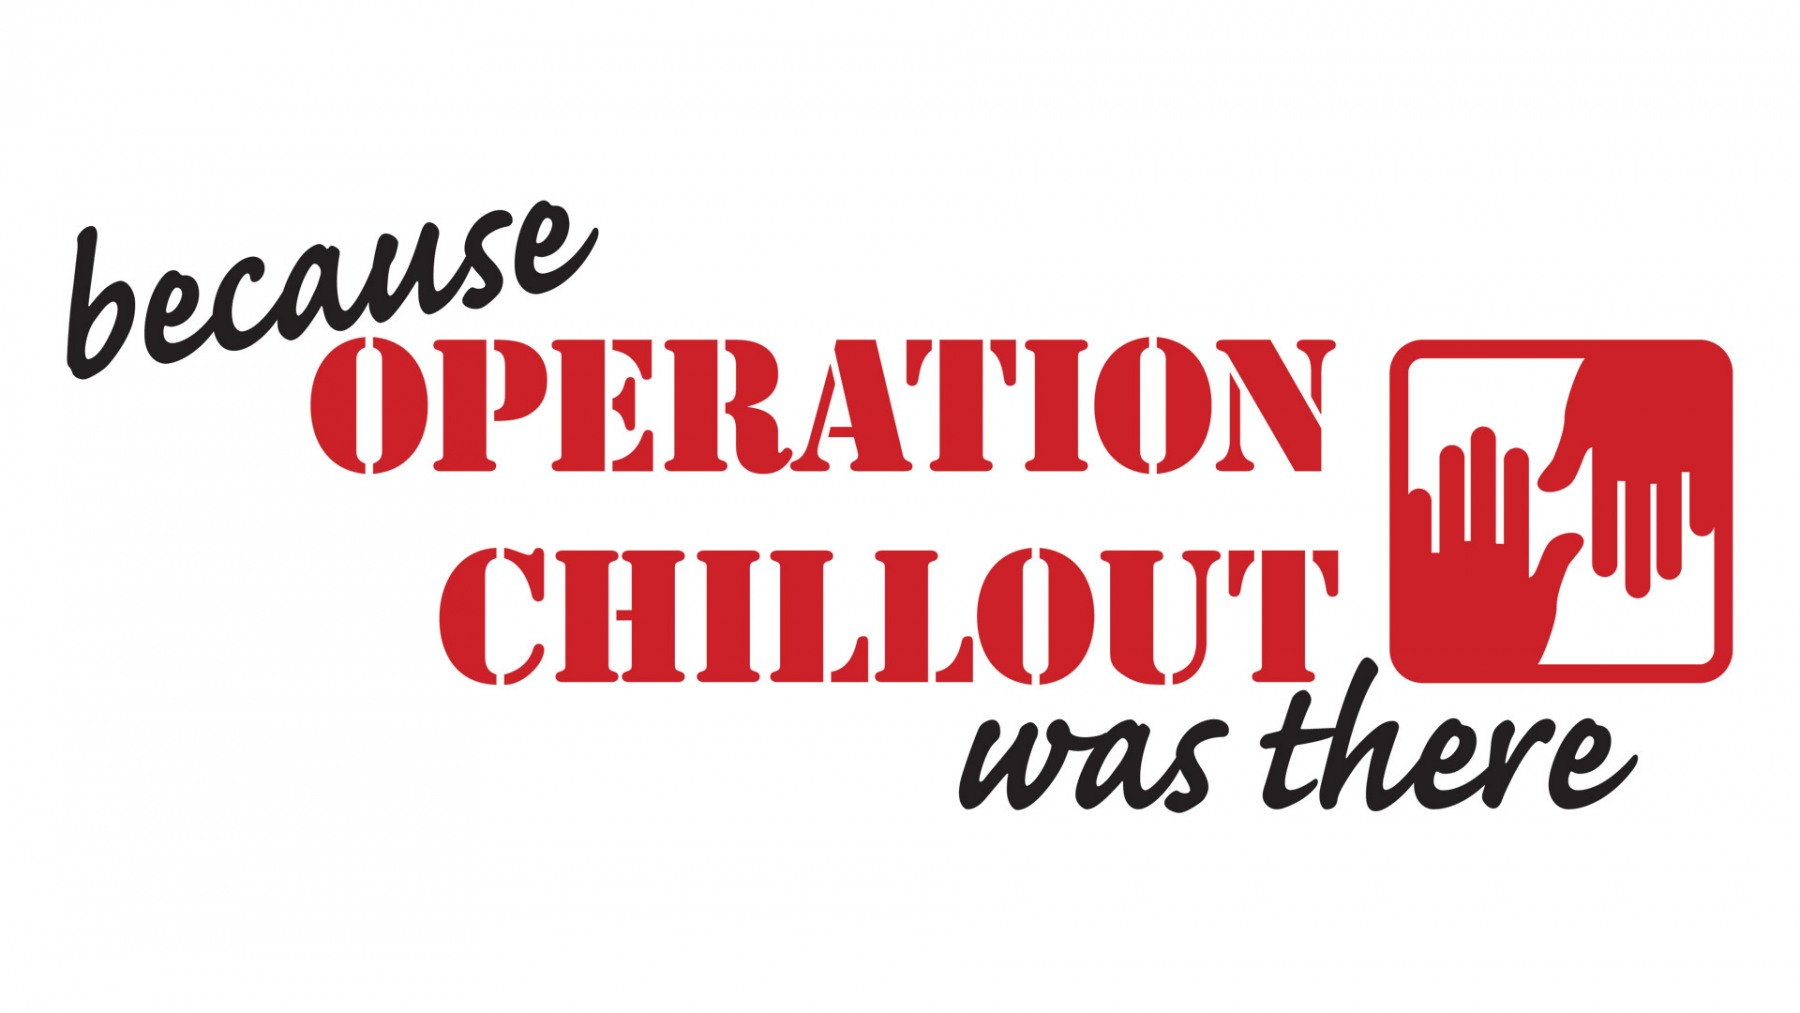 PROMOTIONAL USE OF OPERATION CHILLOUT LOGO